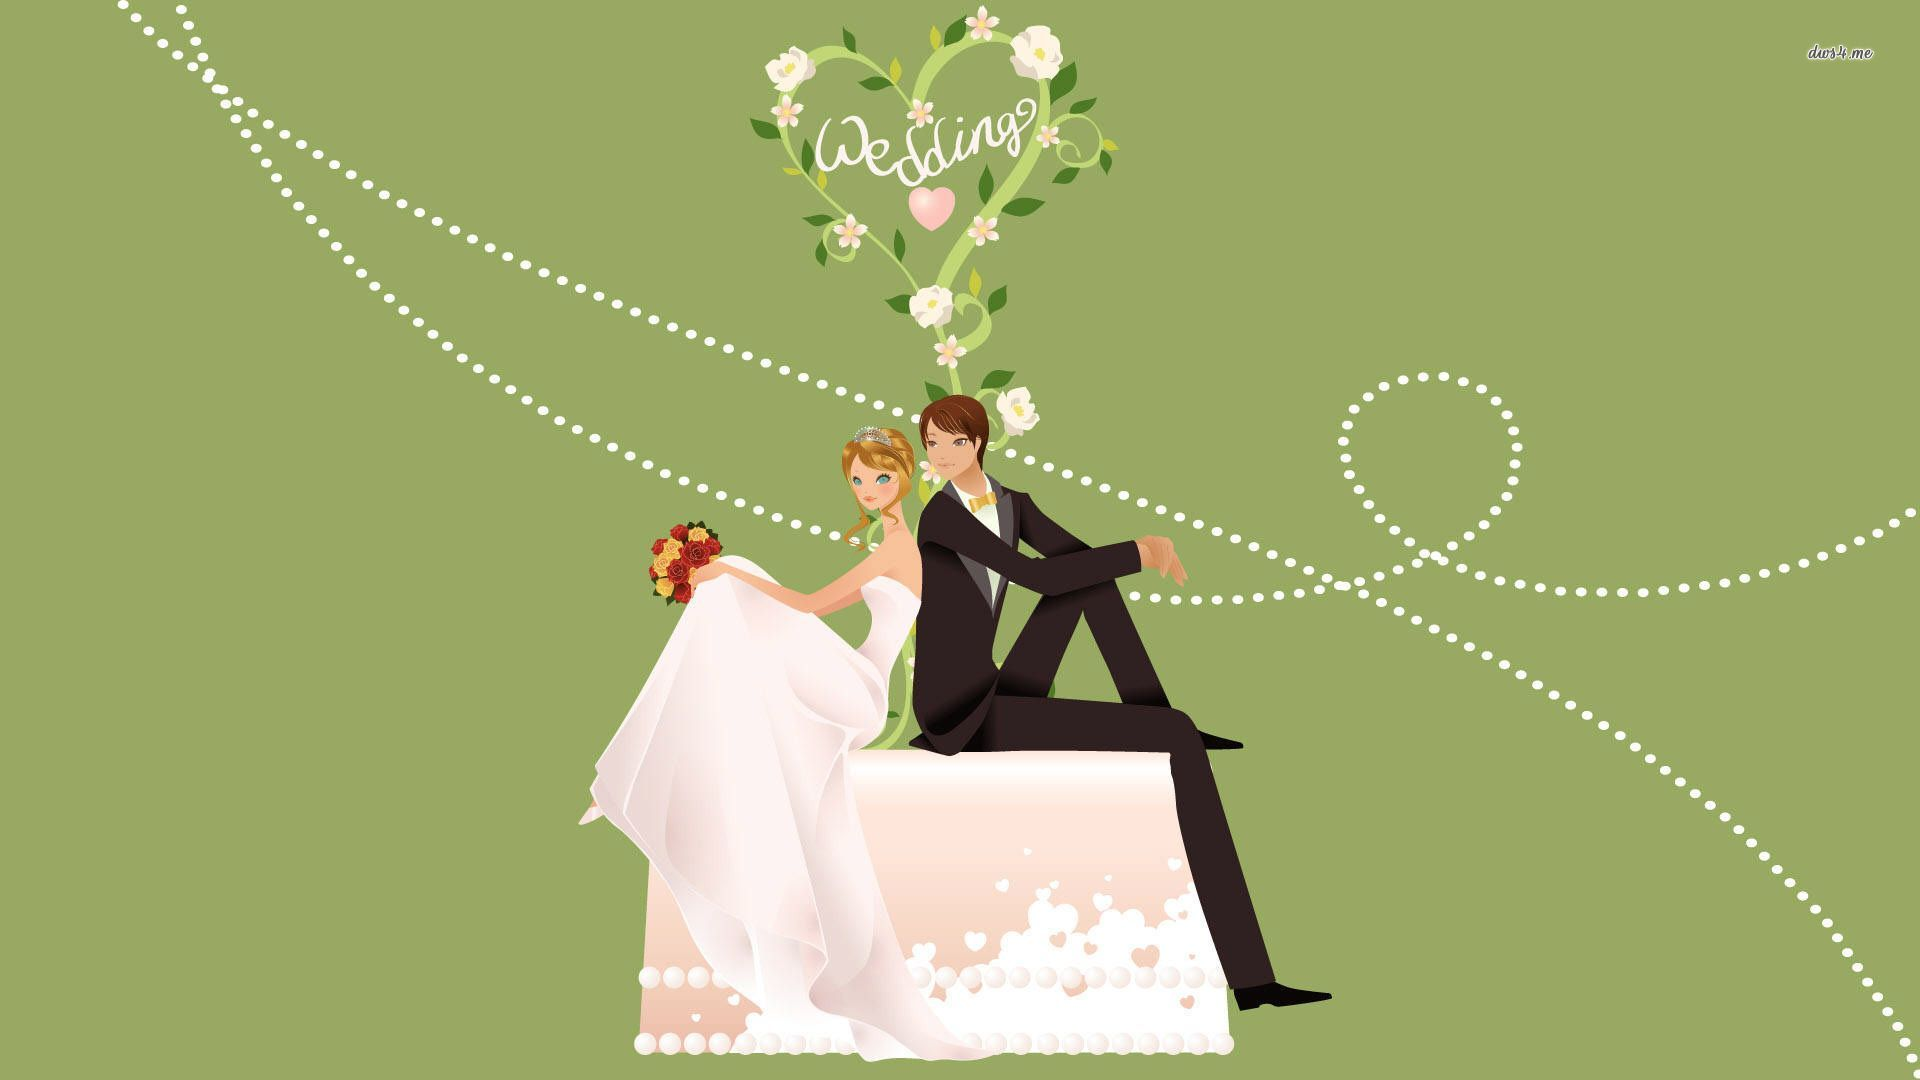 1920x1080 just married couple HD Wallpaper - Man Wallpaper Woman ...